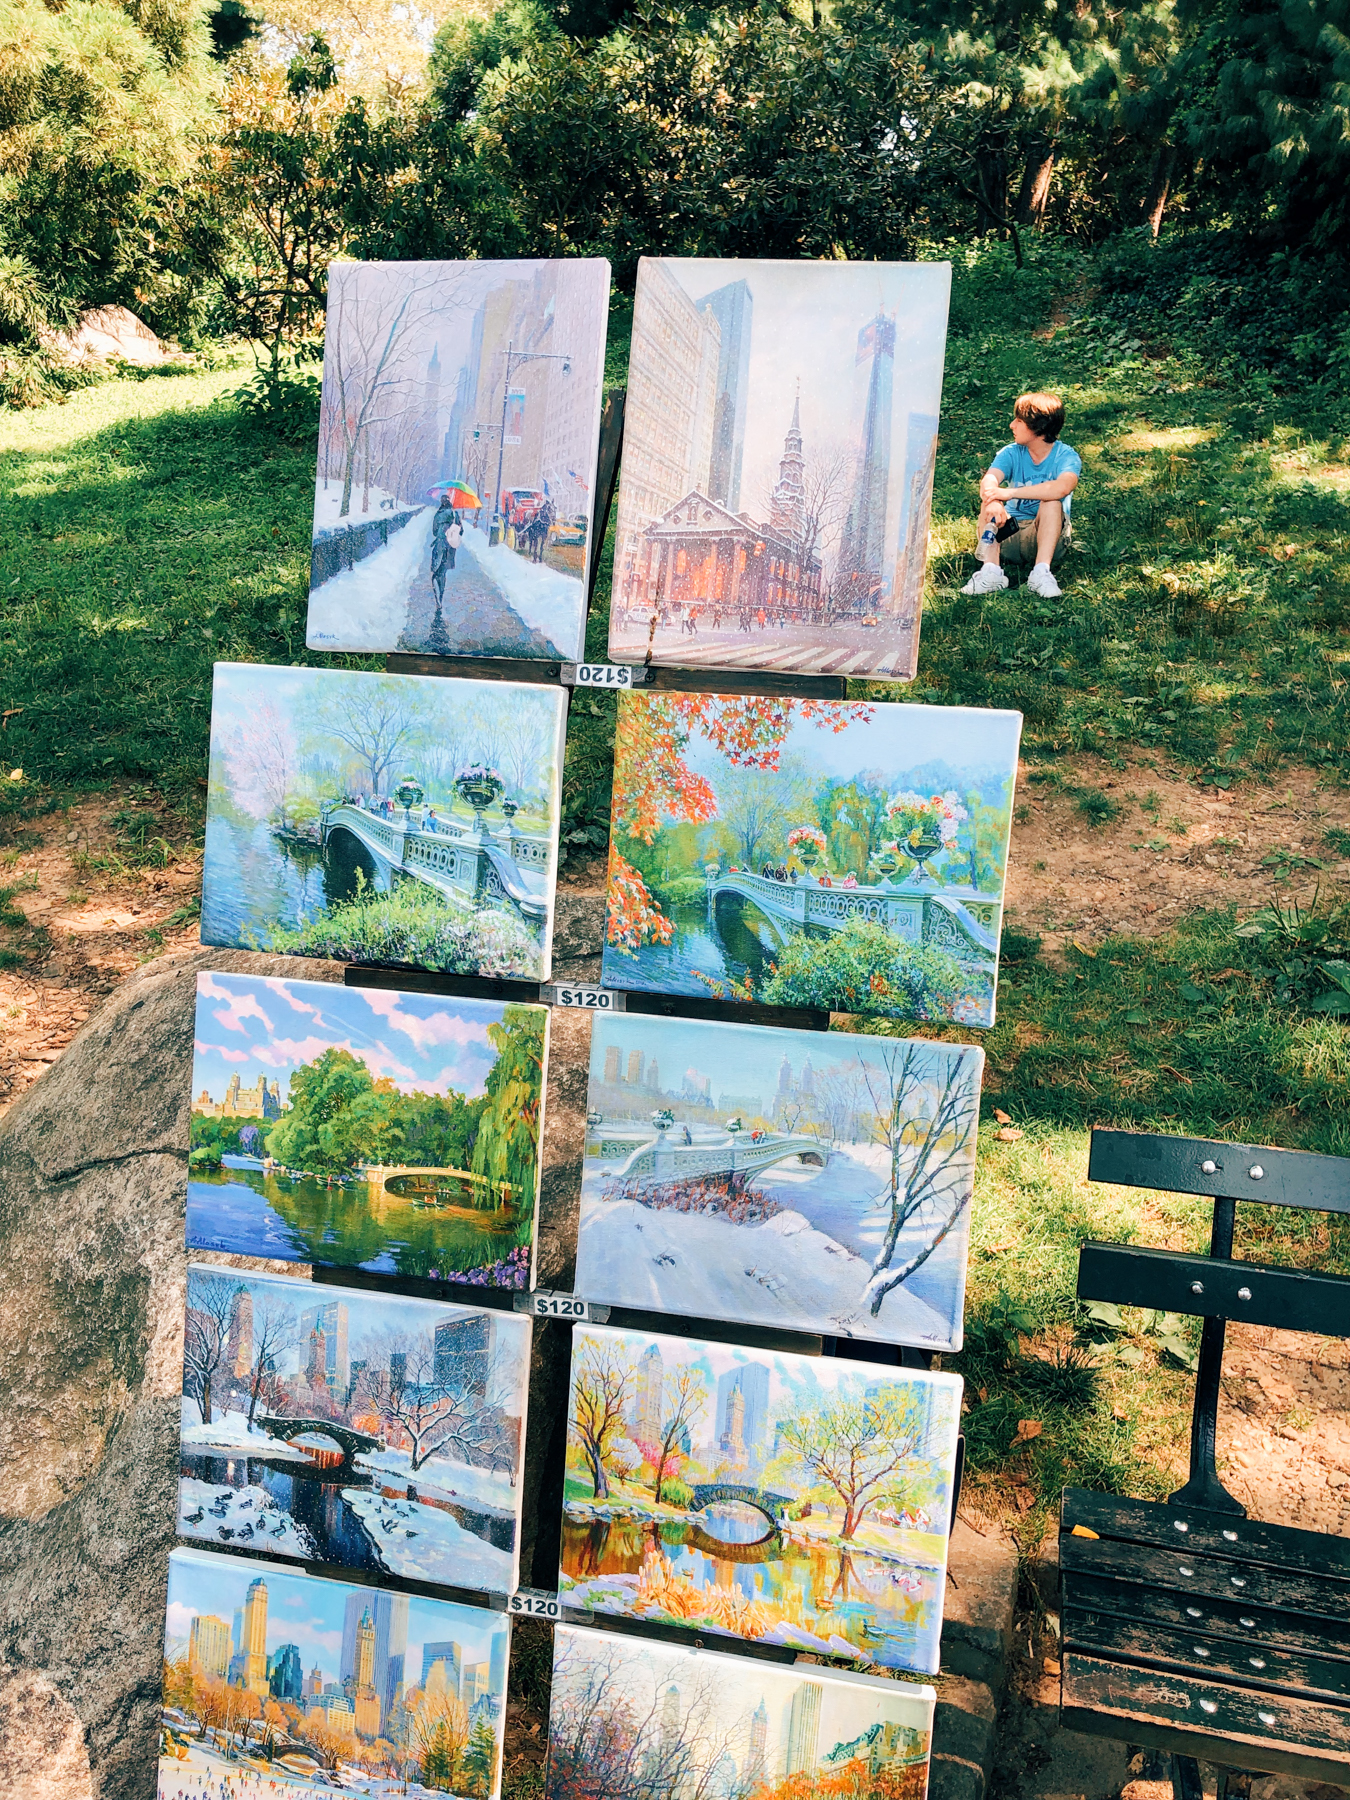 Paintings for sale near the Bethesda Fountain in Central Park